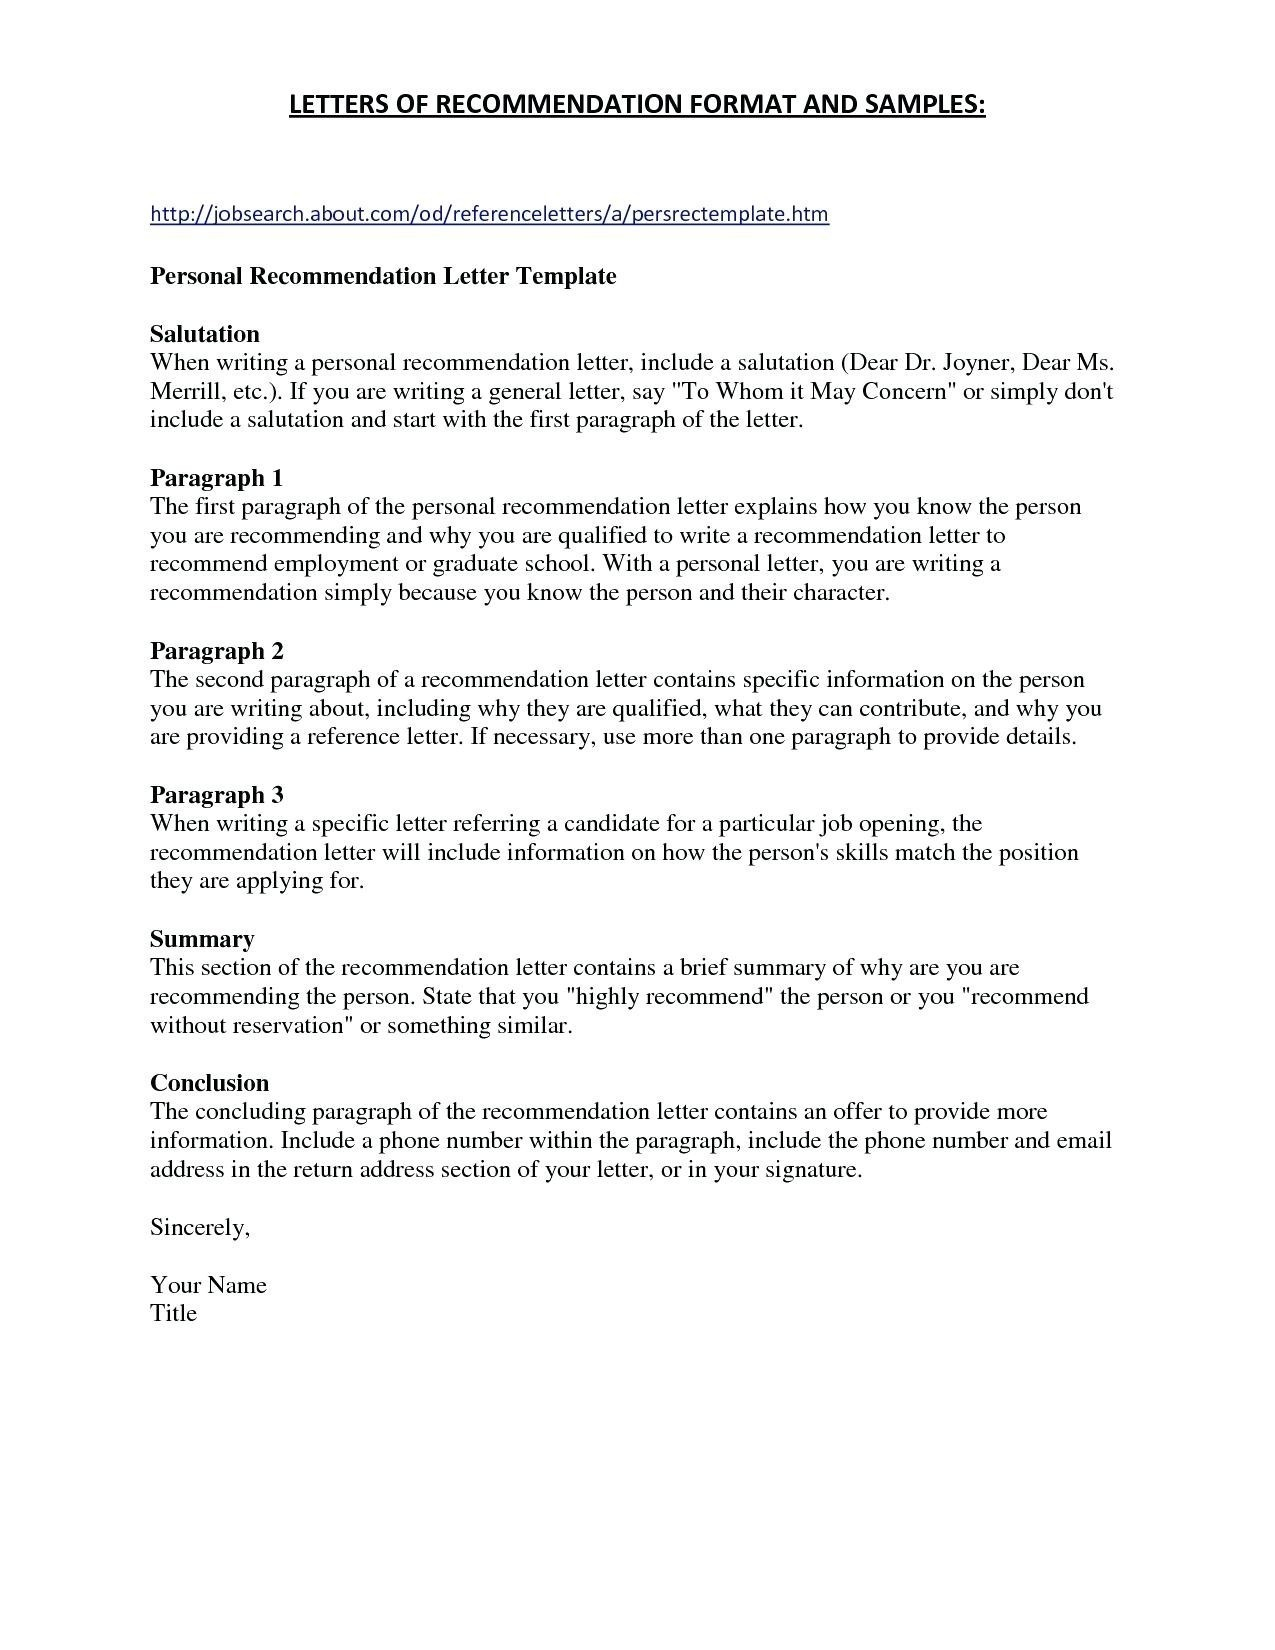 Contract Amendment Letter Template - Sample Cancellation Services Letter Template Best O as Sample